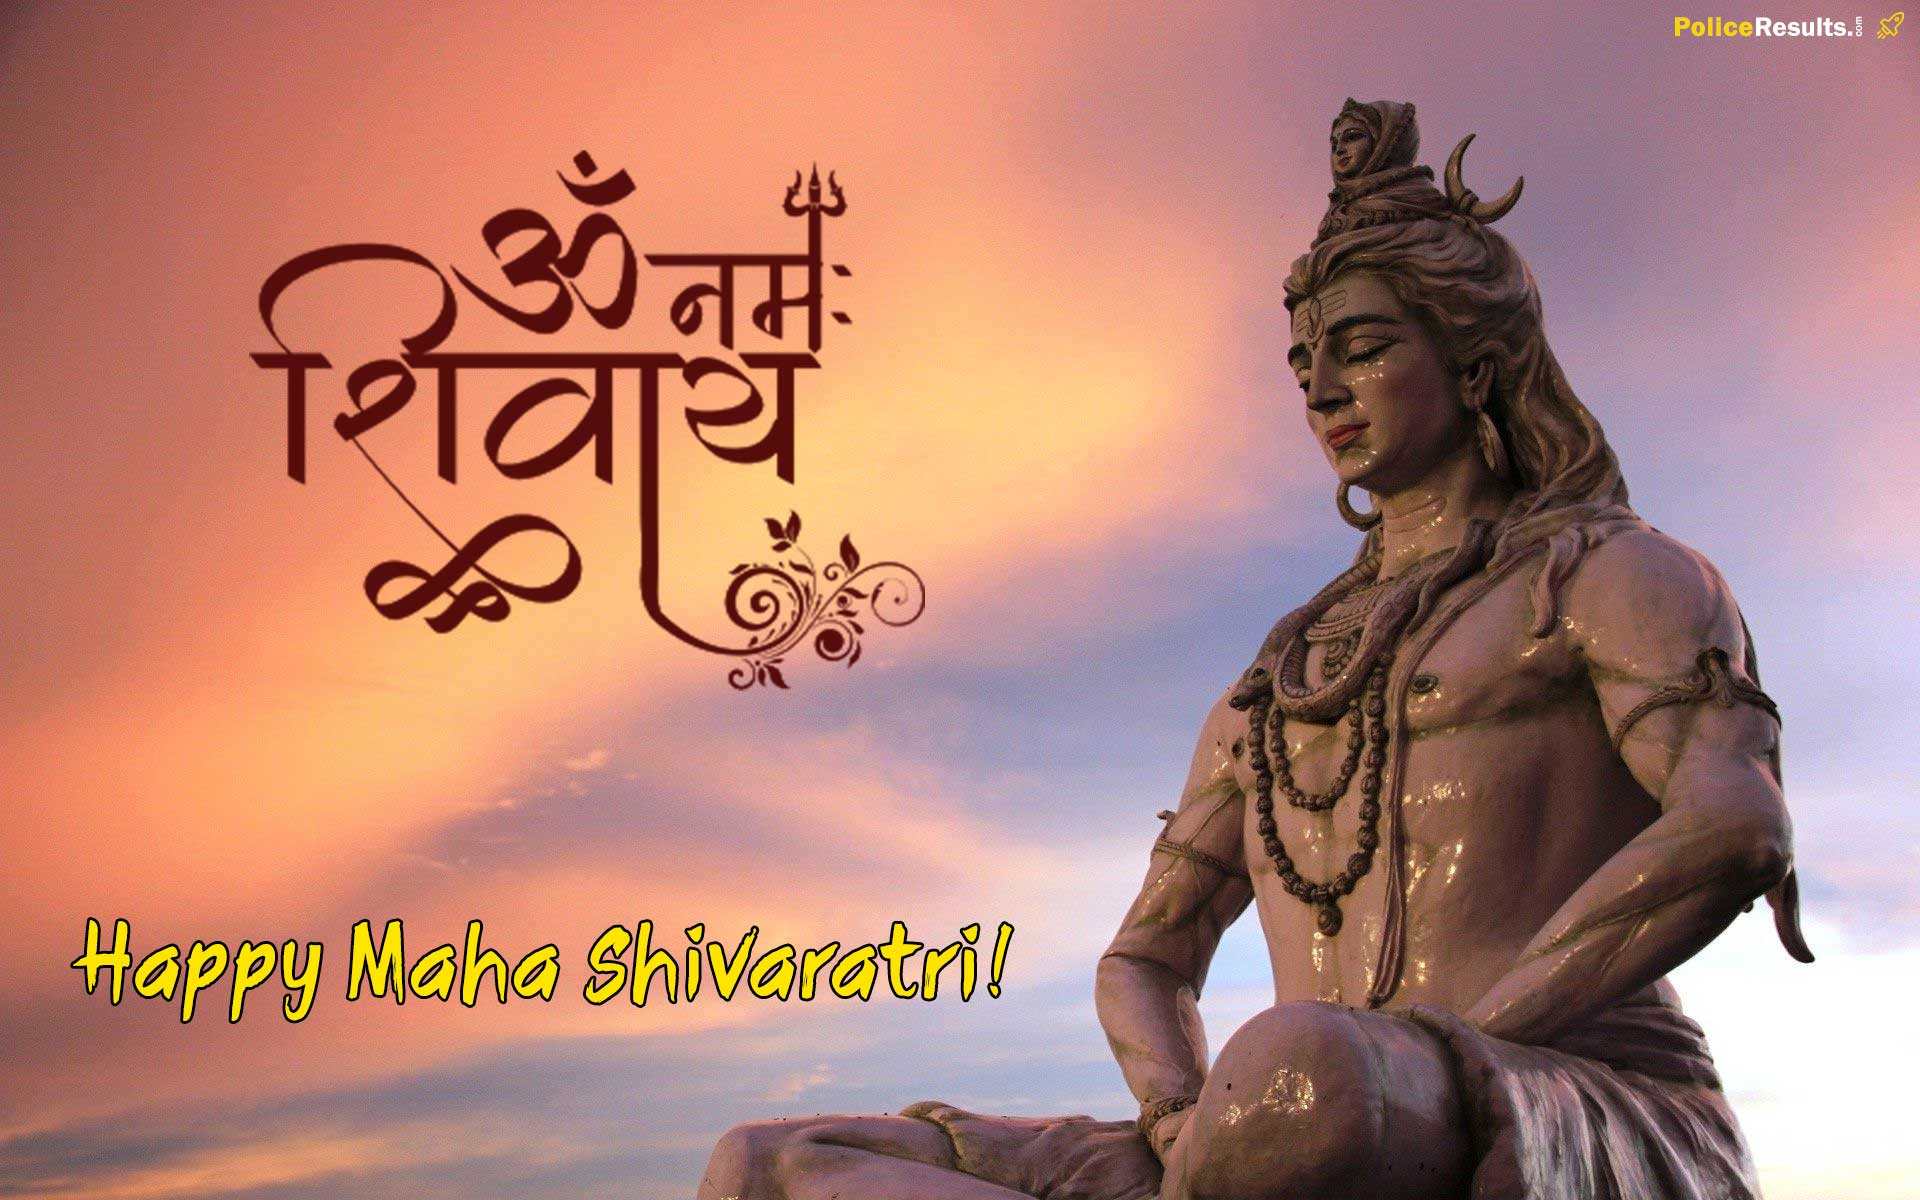 Maha Shivratri 2020: Free Download Lord Shiva Photos, HD Wallpapers, Pictures, Images and Wishes. Download Maha Shivratri pictures